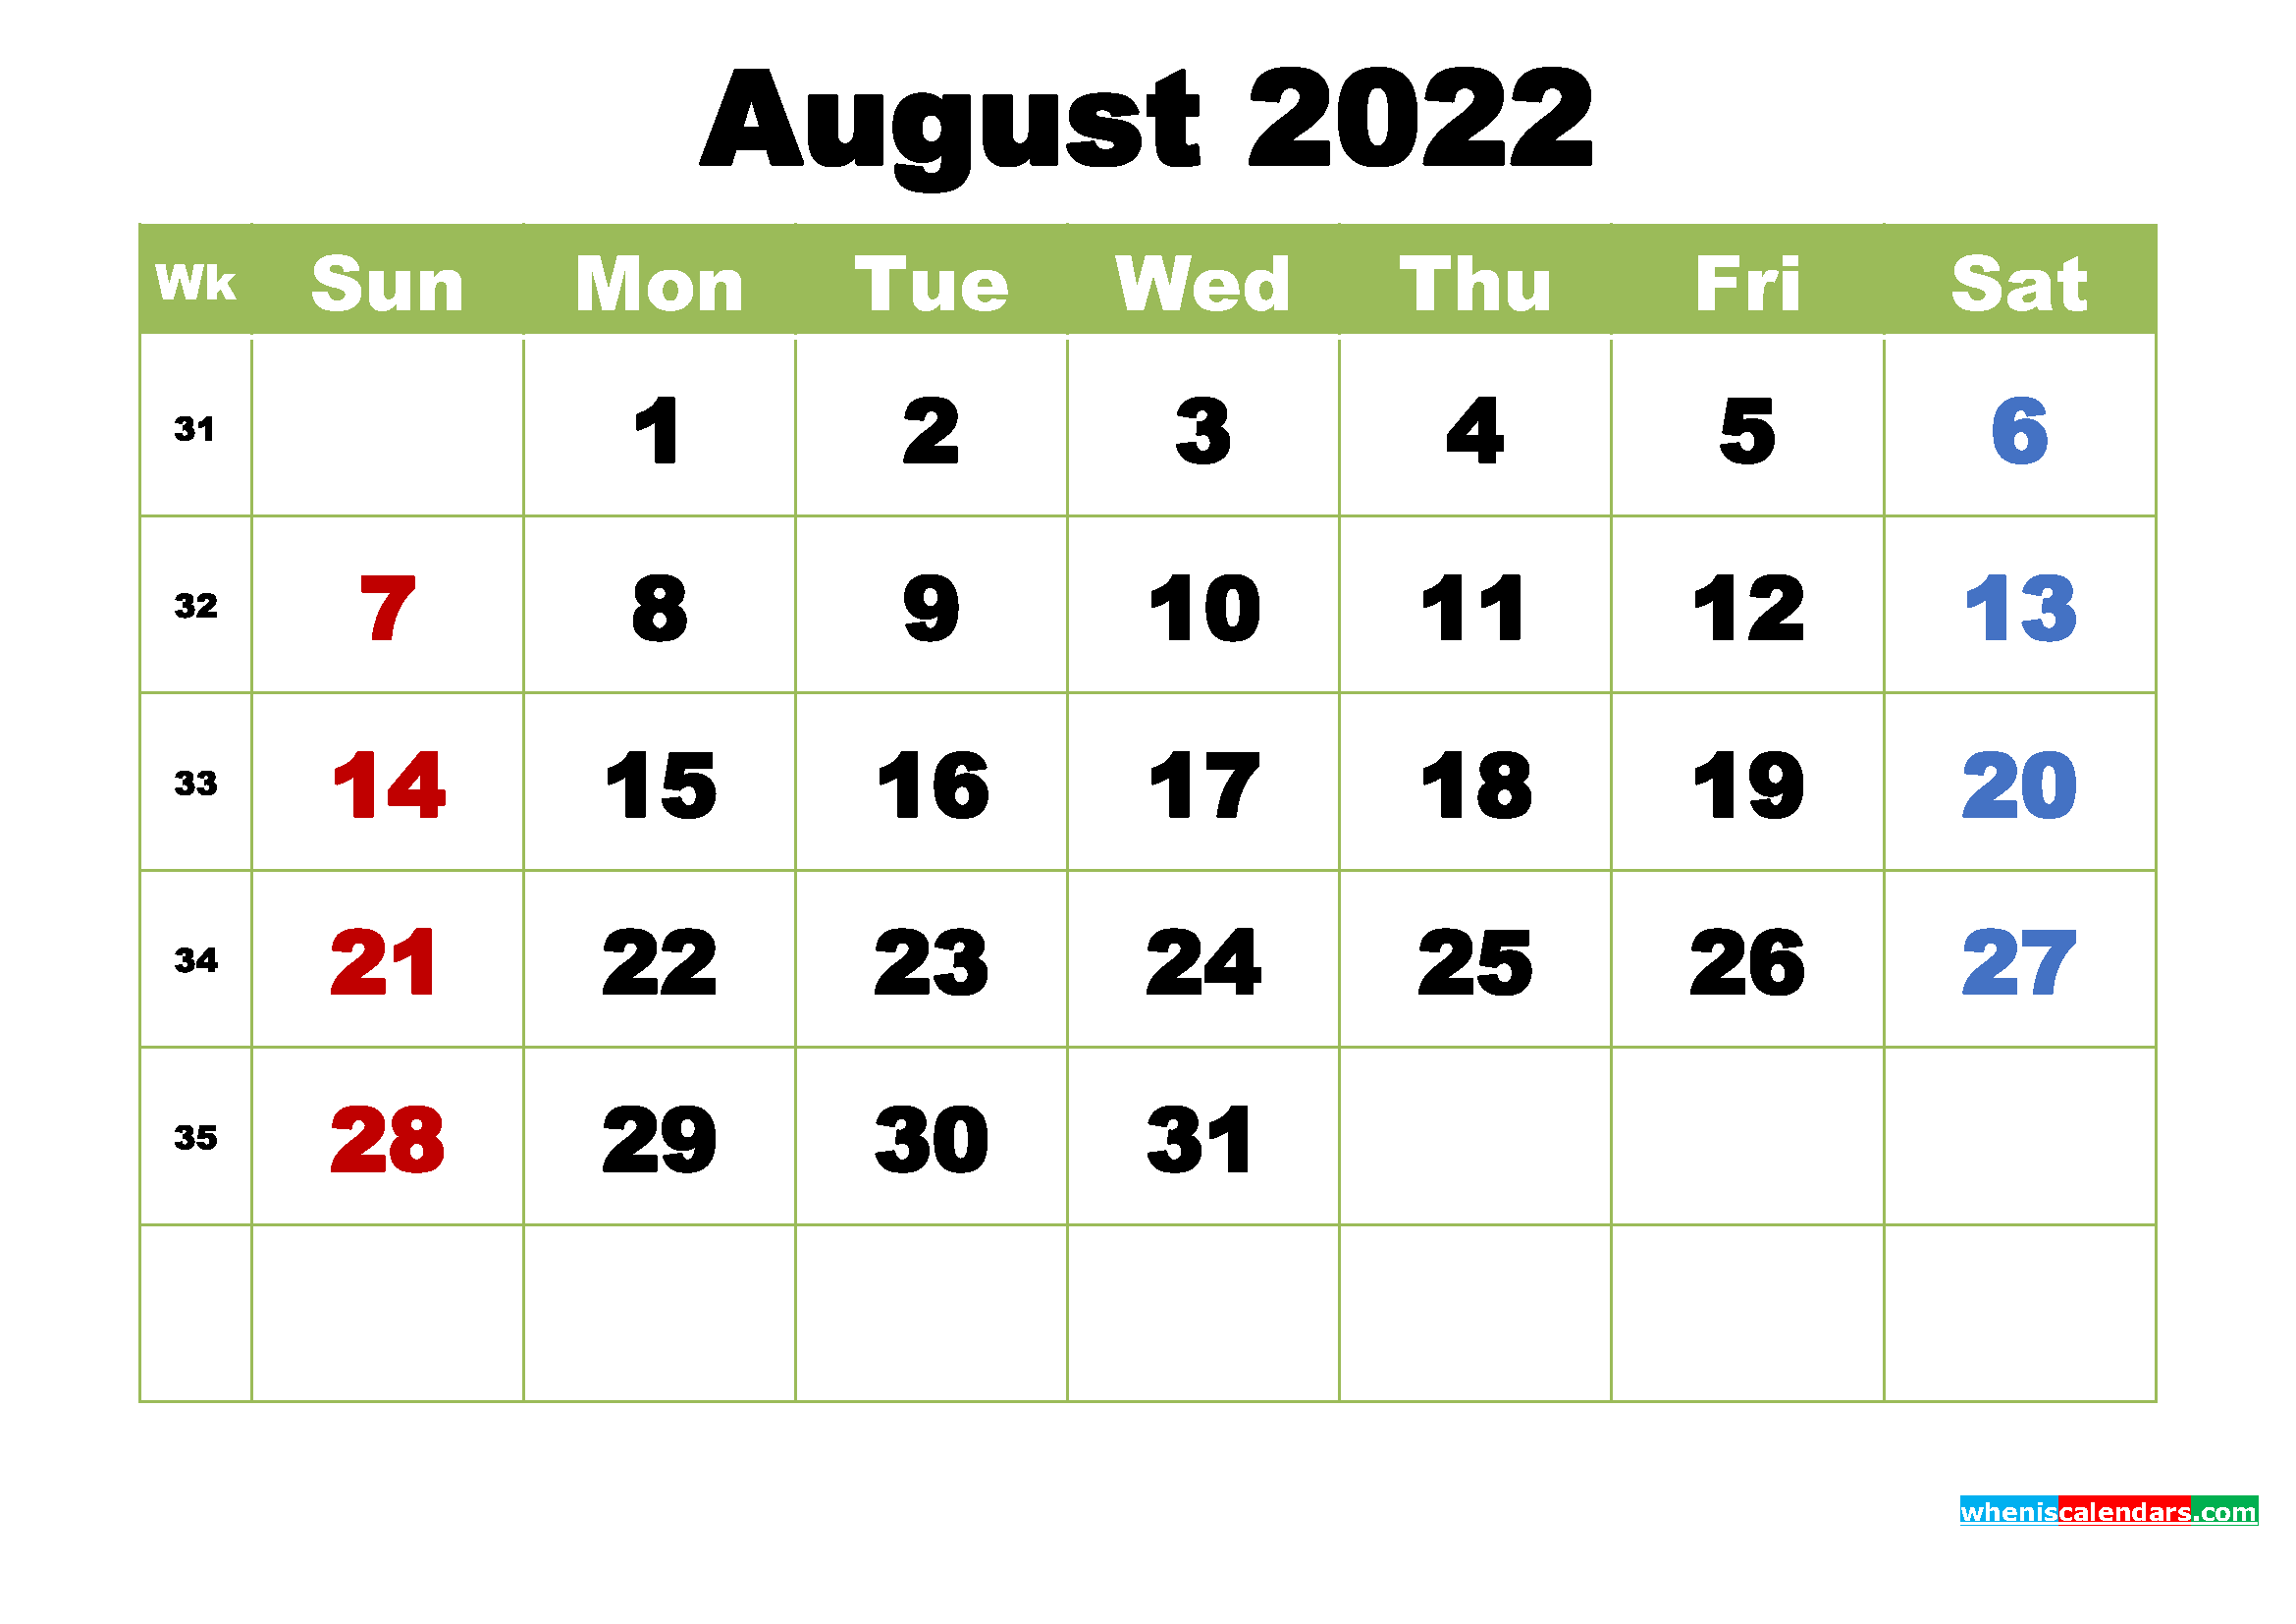 August 2022 Calendar with Holidays Wallpaper